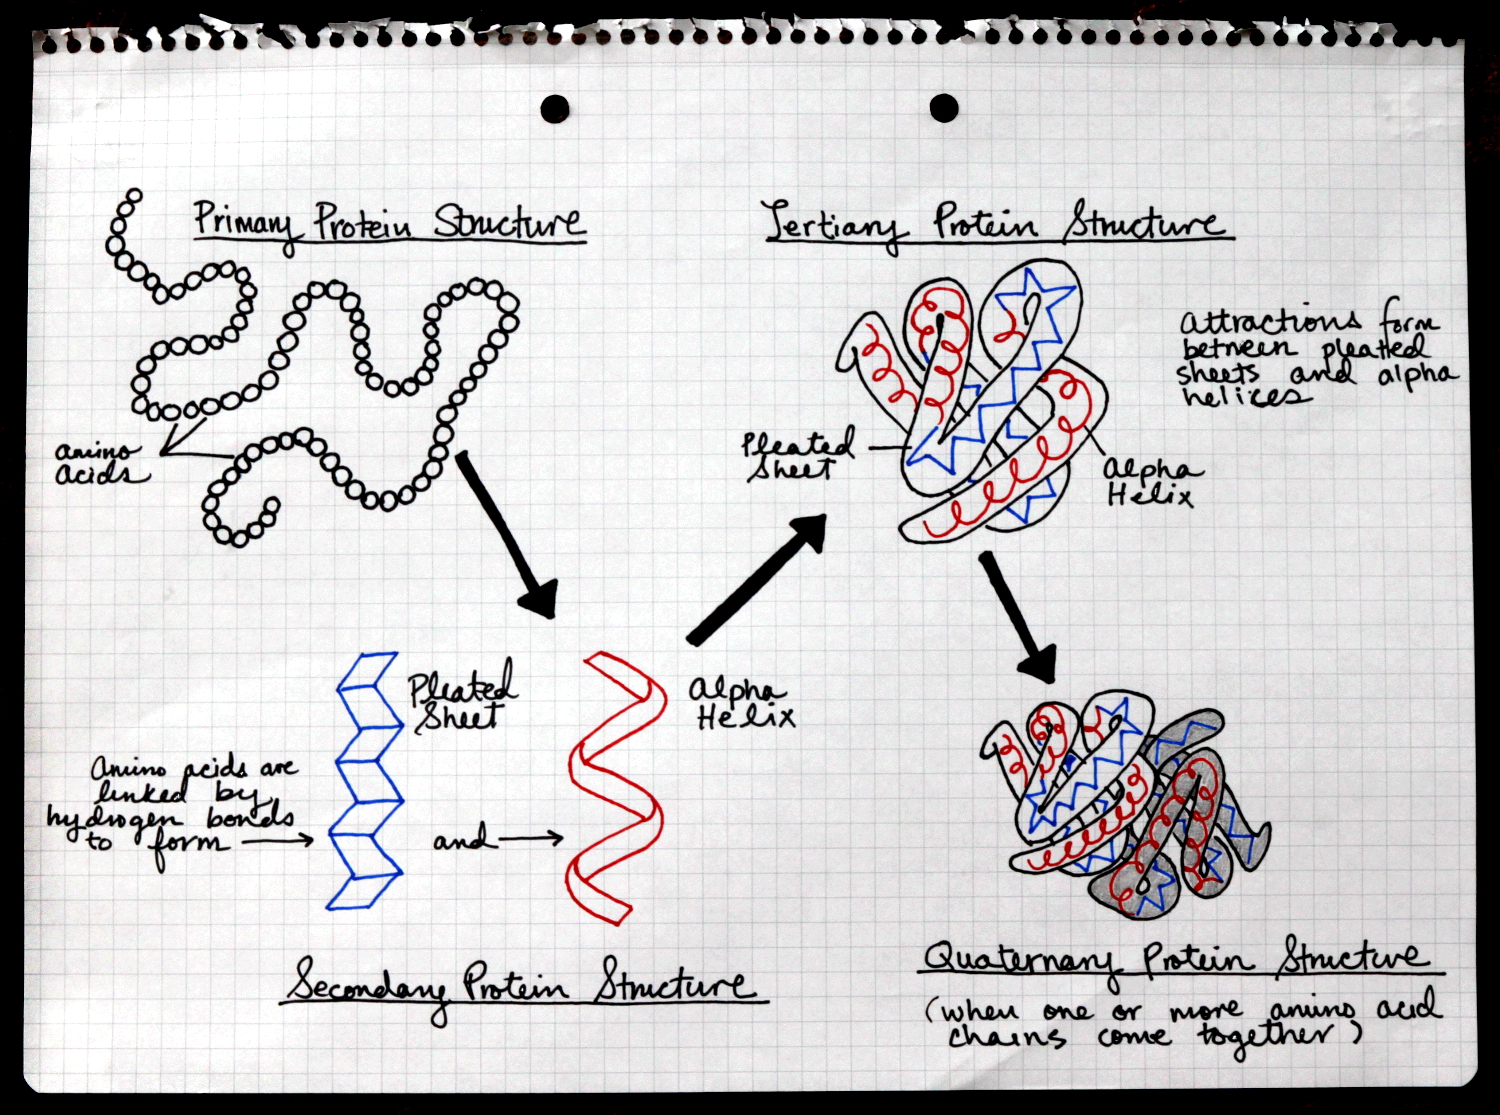 protein folding theory essay Introduction to protein folding - the process and factors involved  the theory is derived from the concept of cooperativity (the probability that a peptide chain.